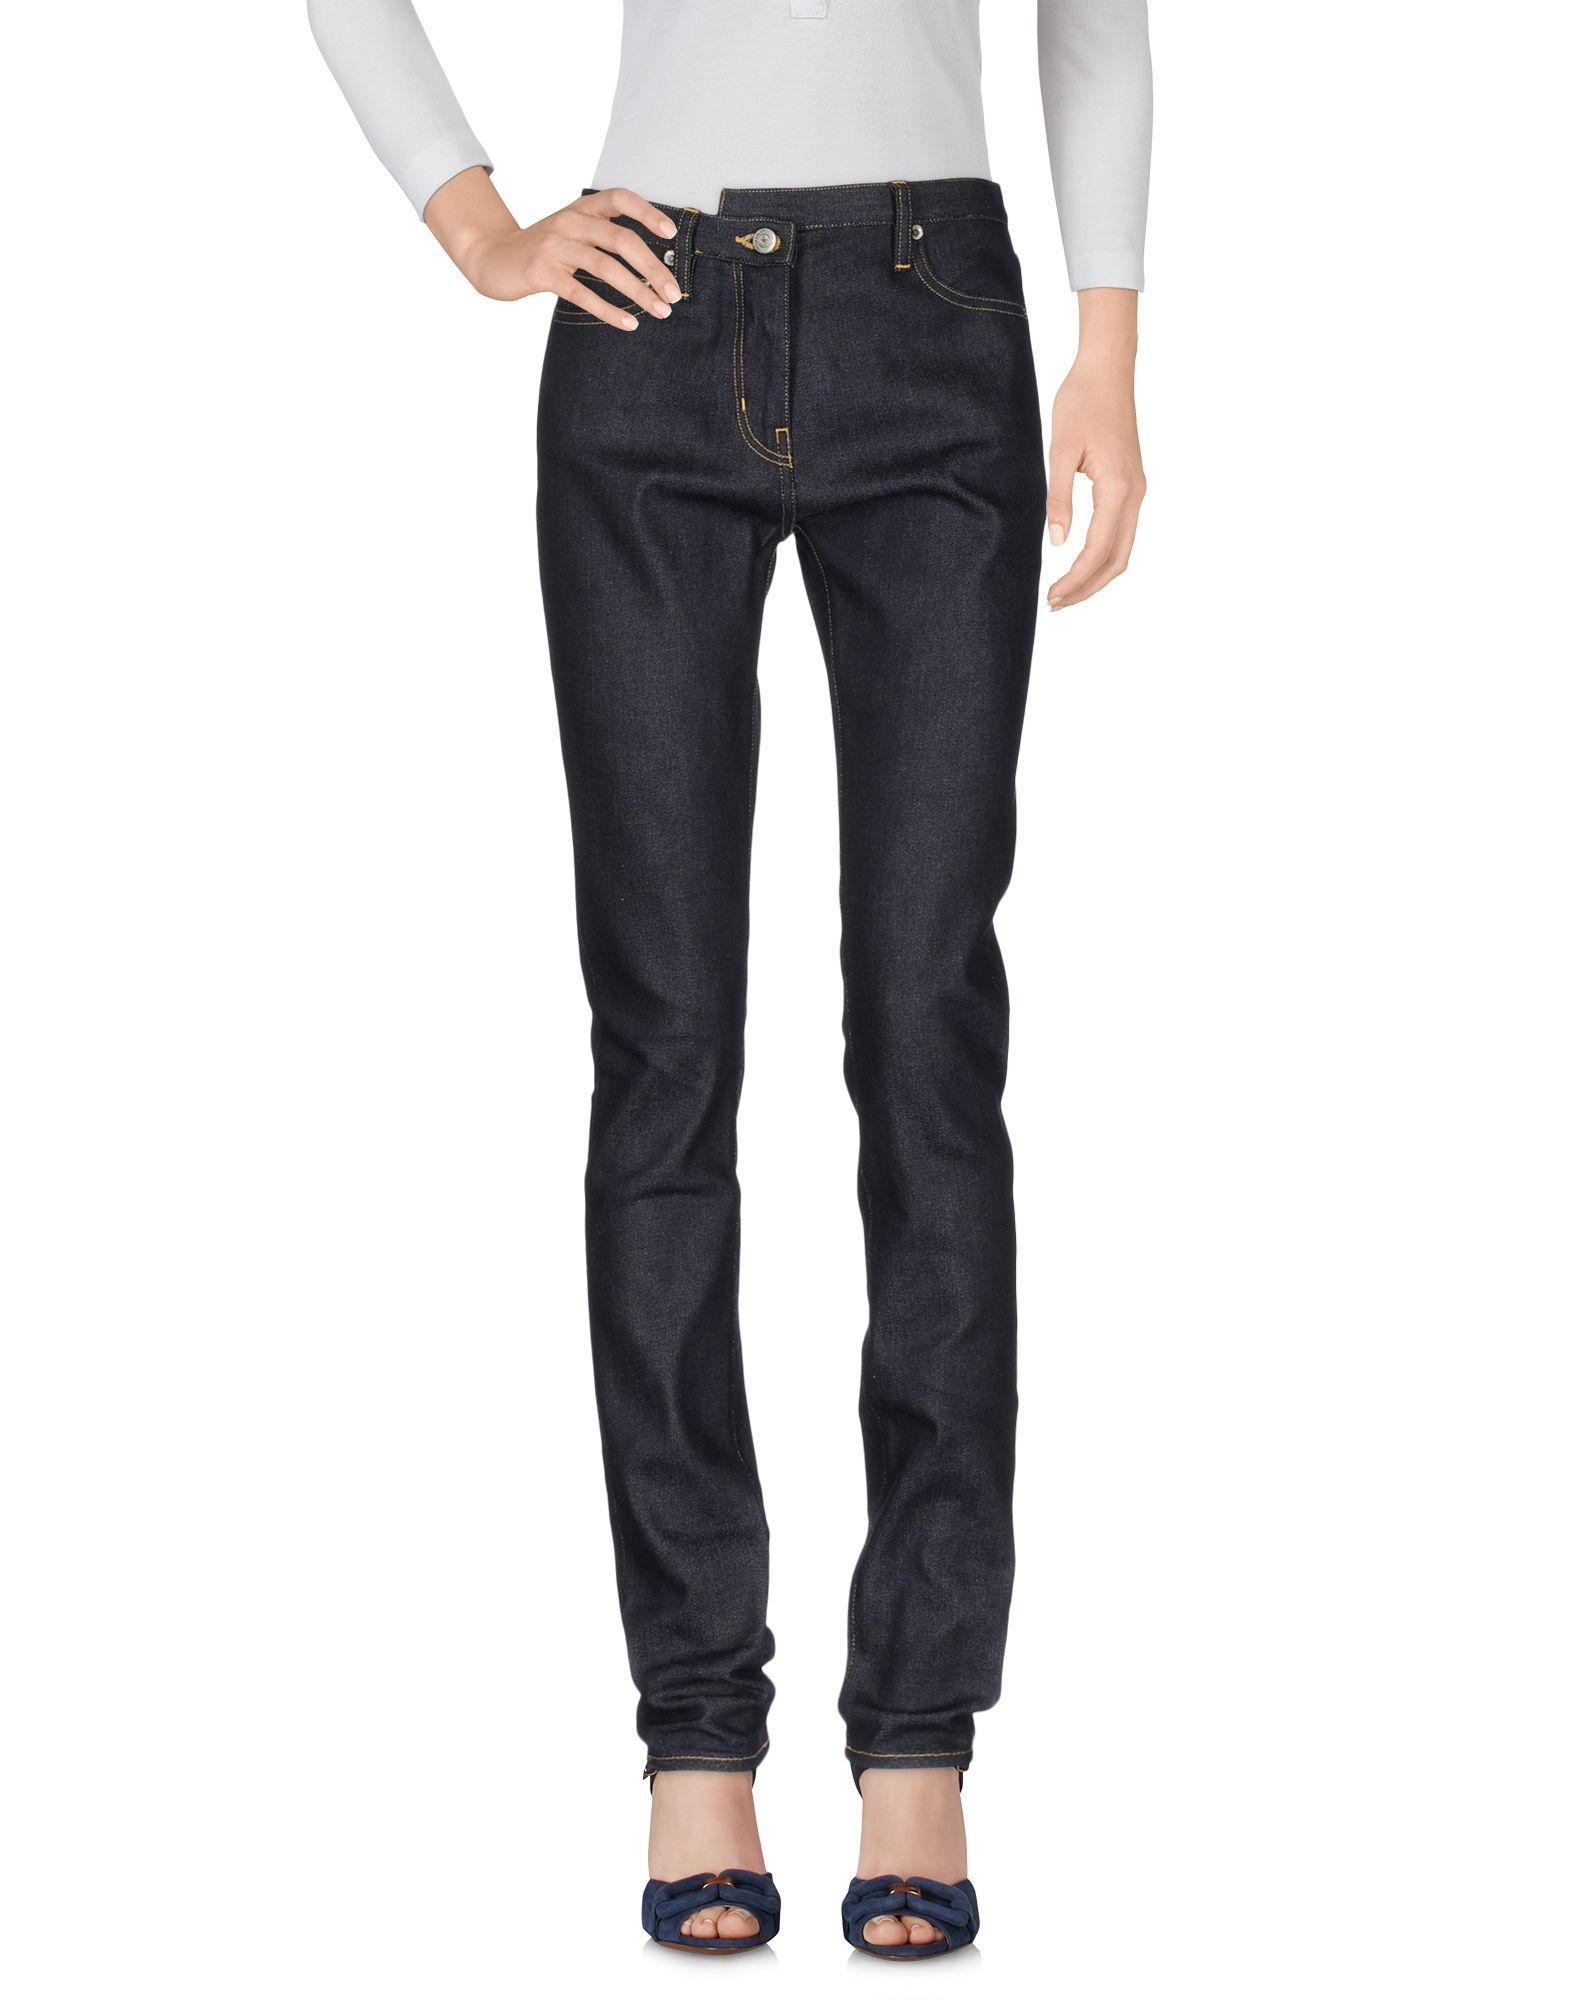 Pantaloni Jeans Golden Goose Deluxe Brand Donna - Acquista online su 9DHzQZ